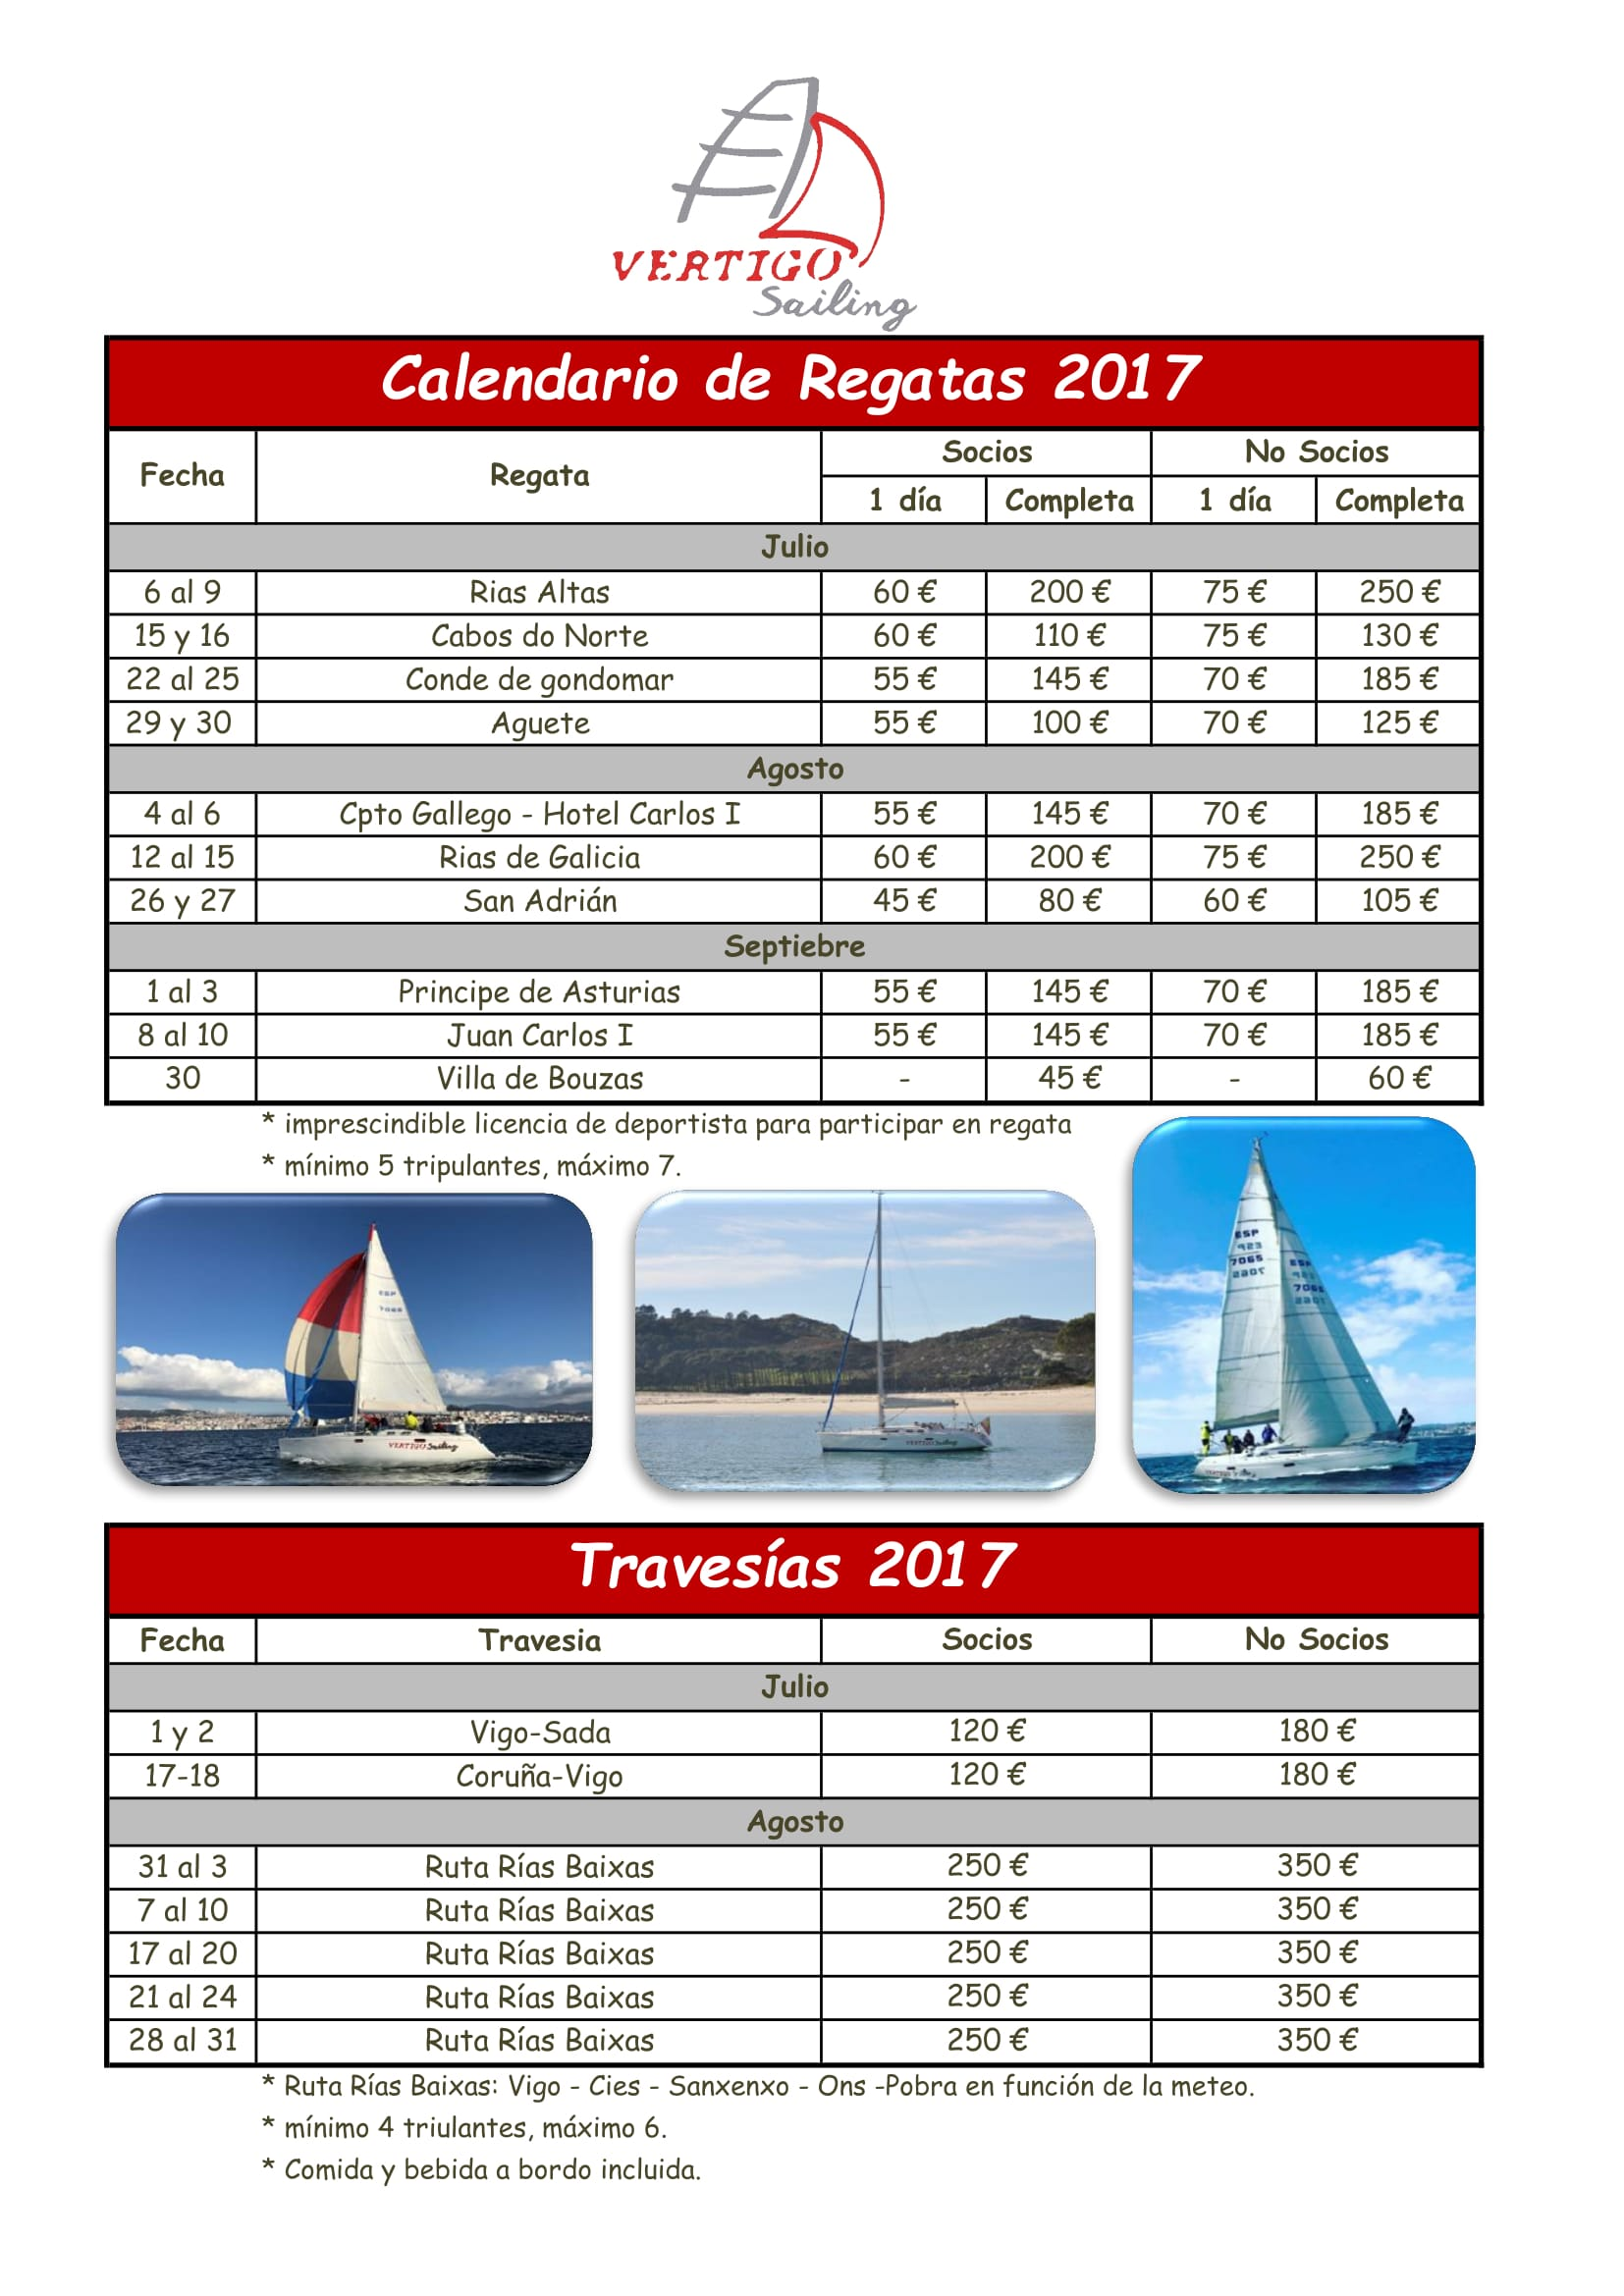 Calendario de Regatas y Travesias 2017 – Noticias Vertigo Sailing 950ad41815d